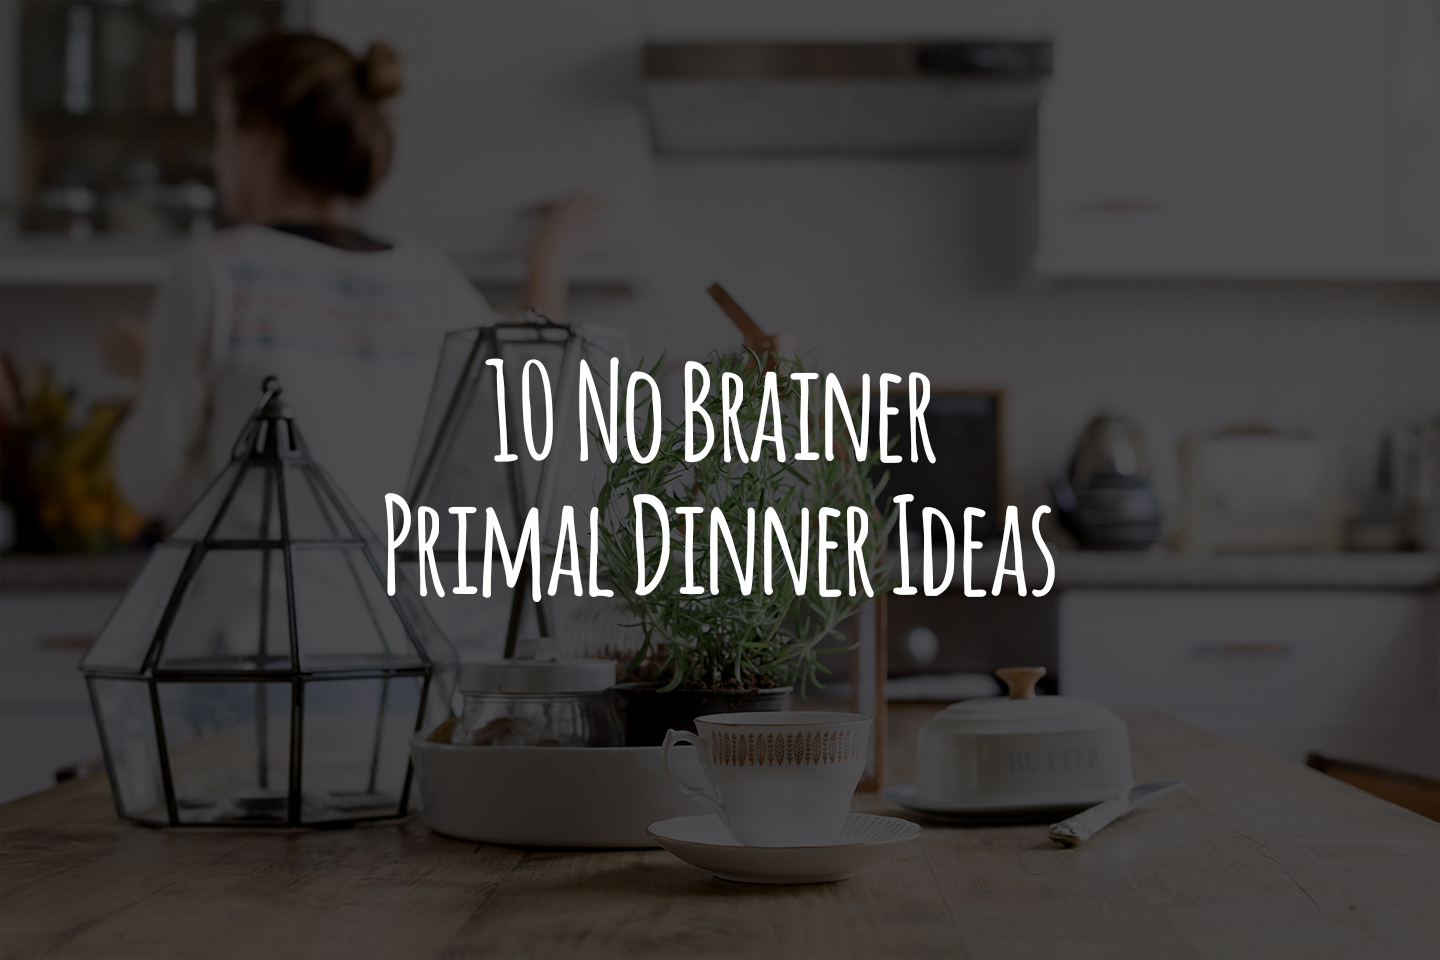 10 No Brainer Primal Dinner Ideas